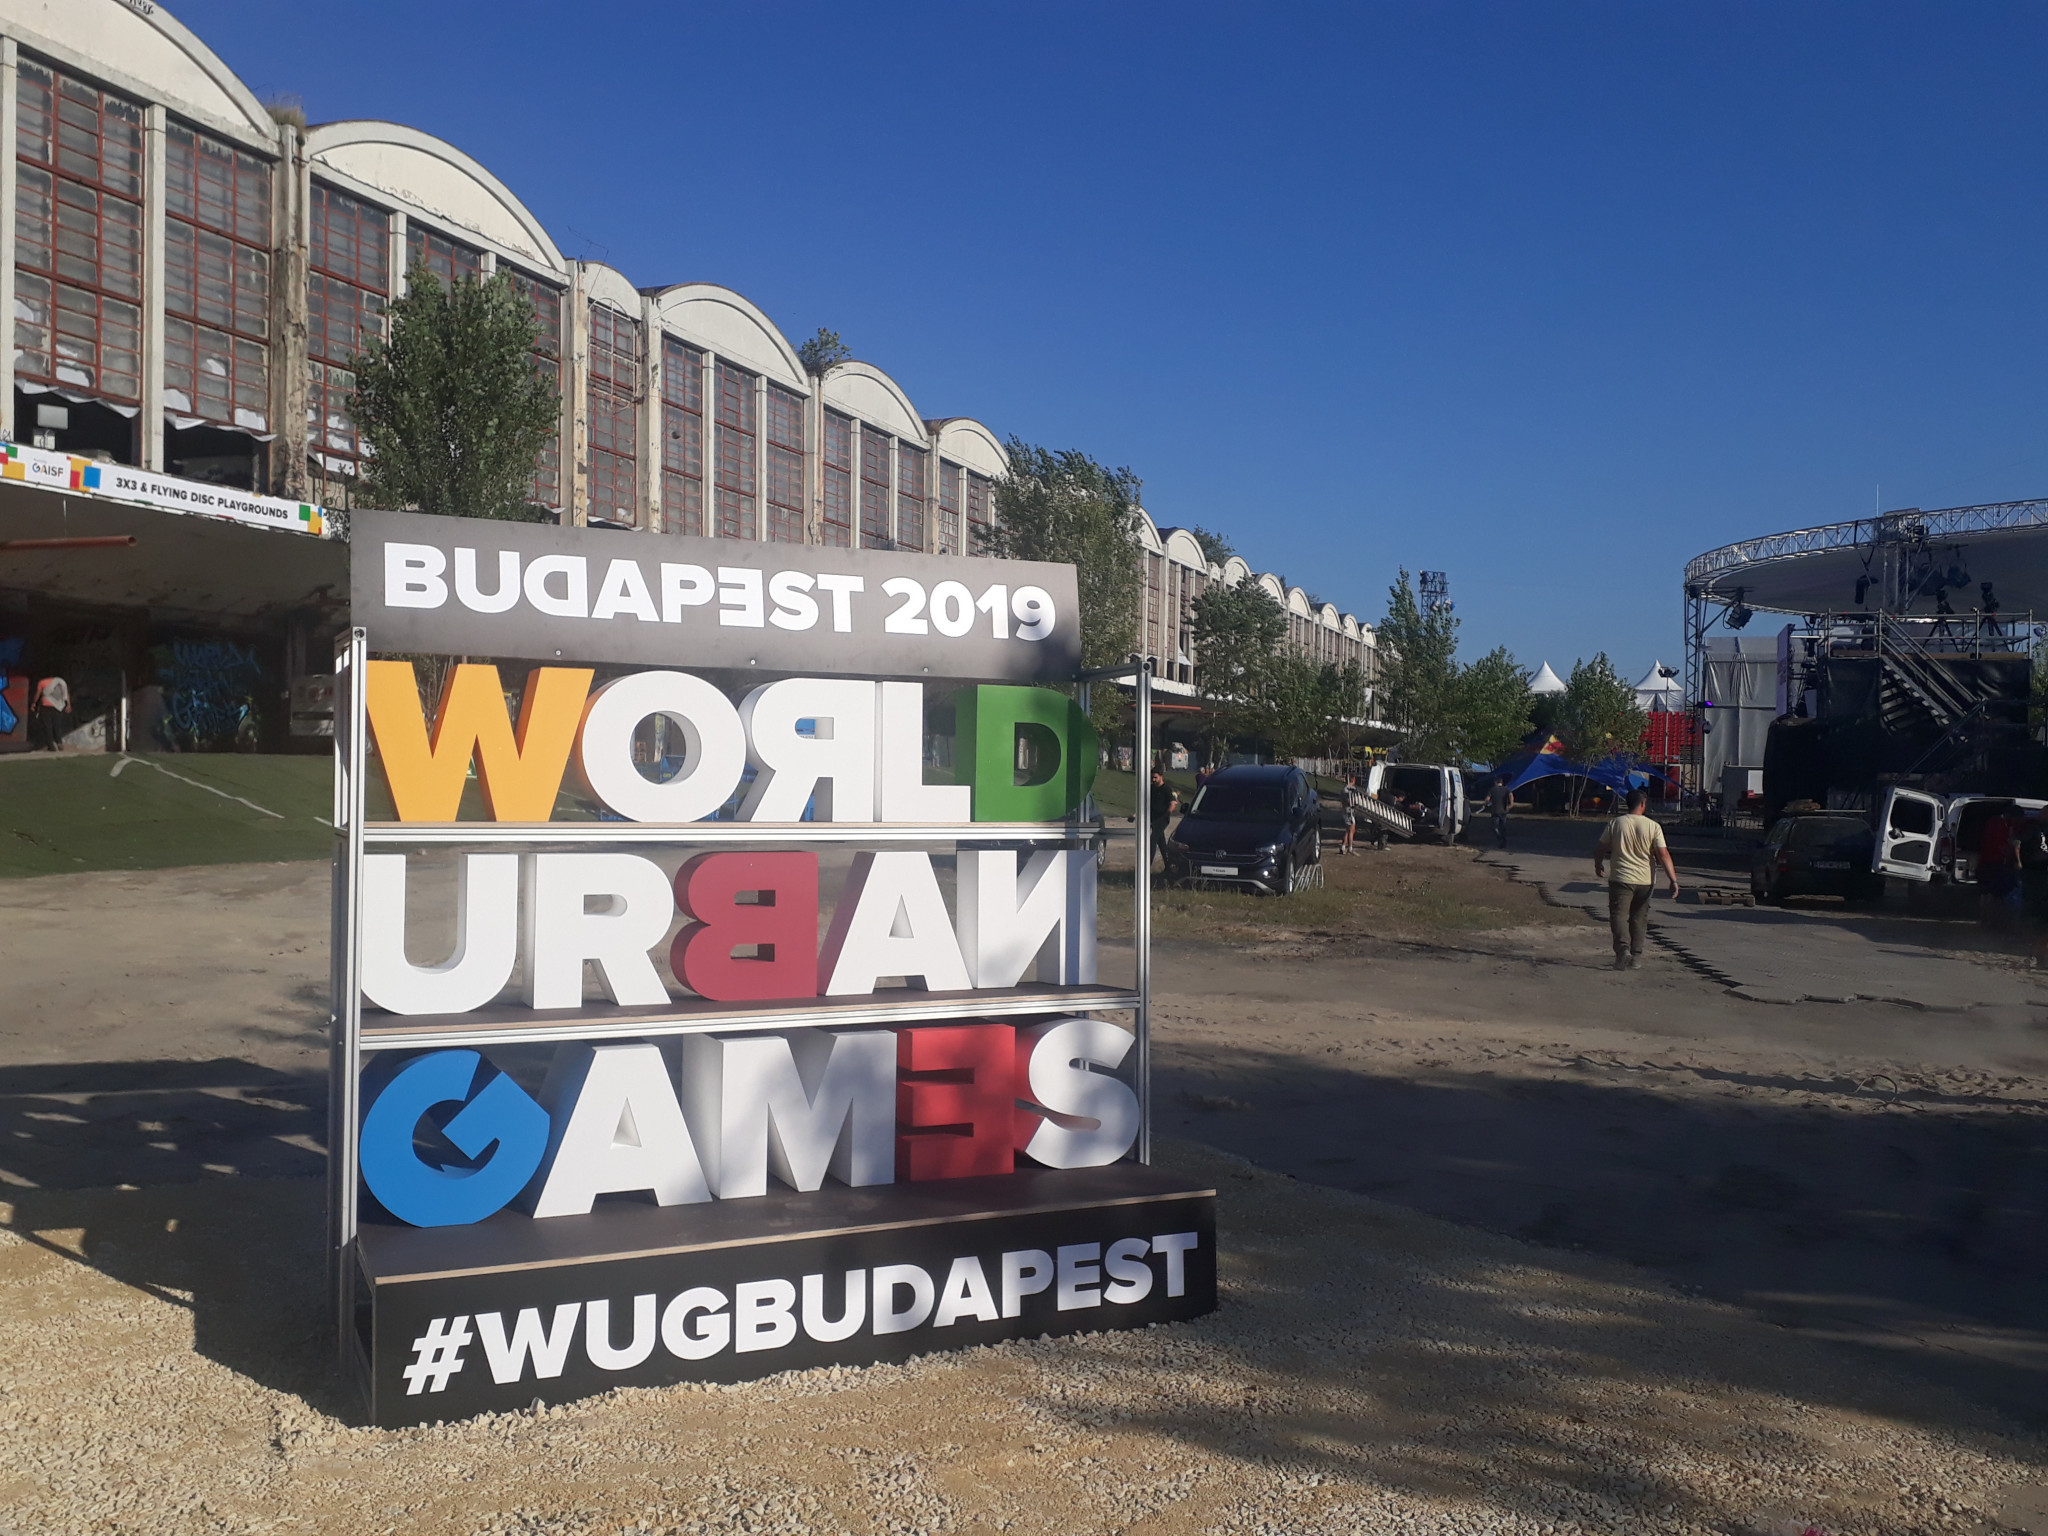 Budapest are currently hosting the first World Urban Games and plan to hold several more competitions ©Matthew Smith